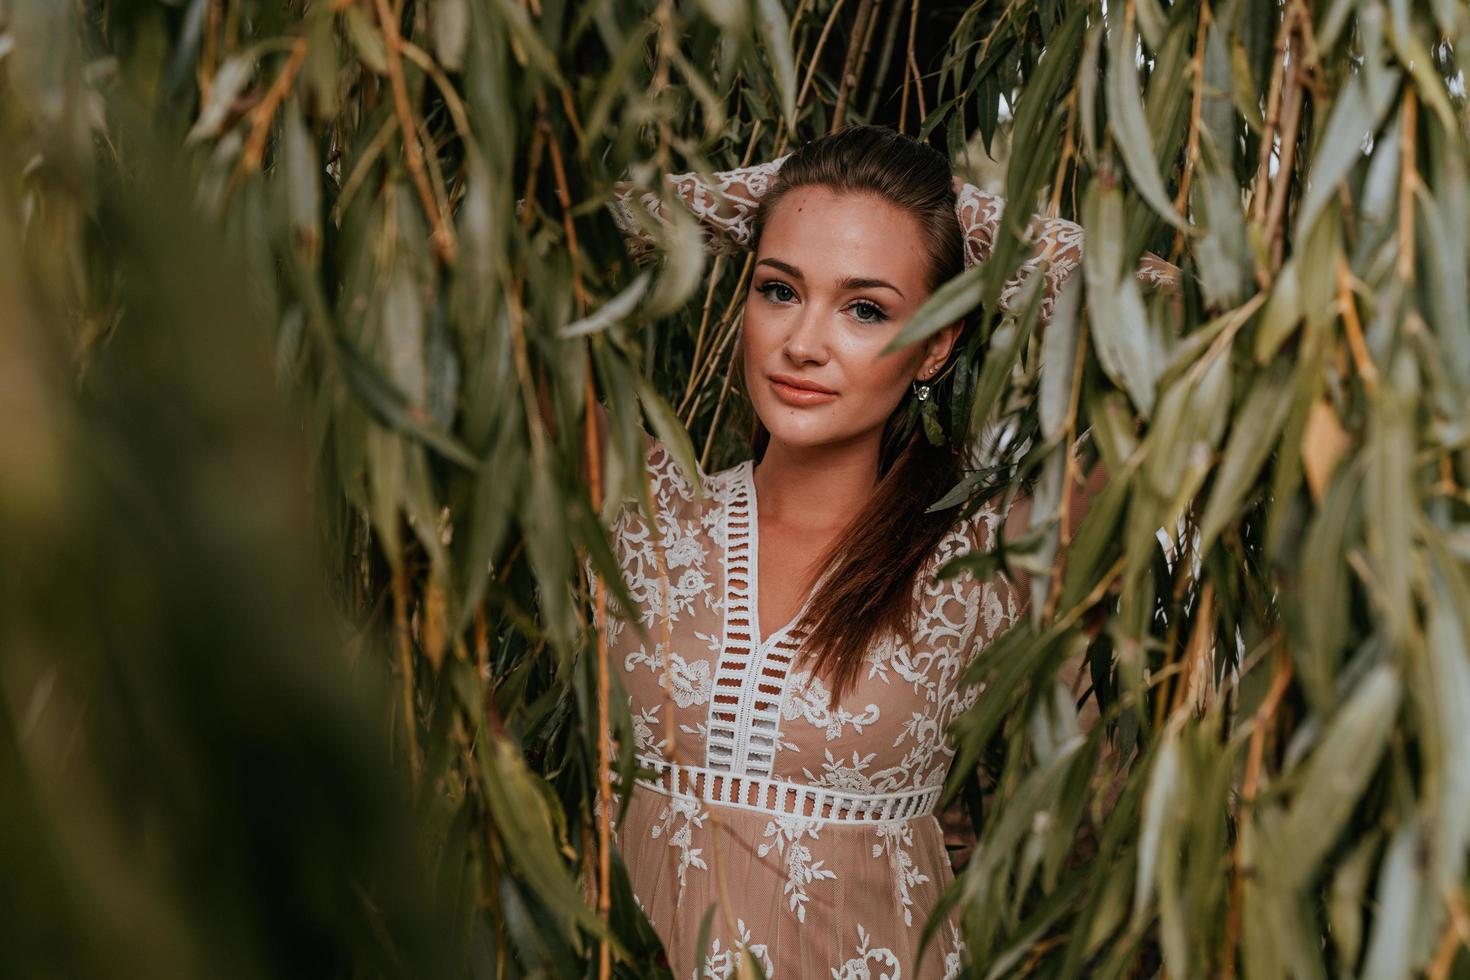 Woman wearing a lacey dress against leaves photo